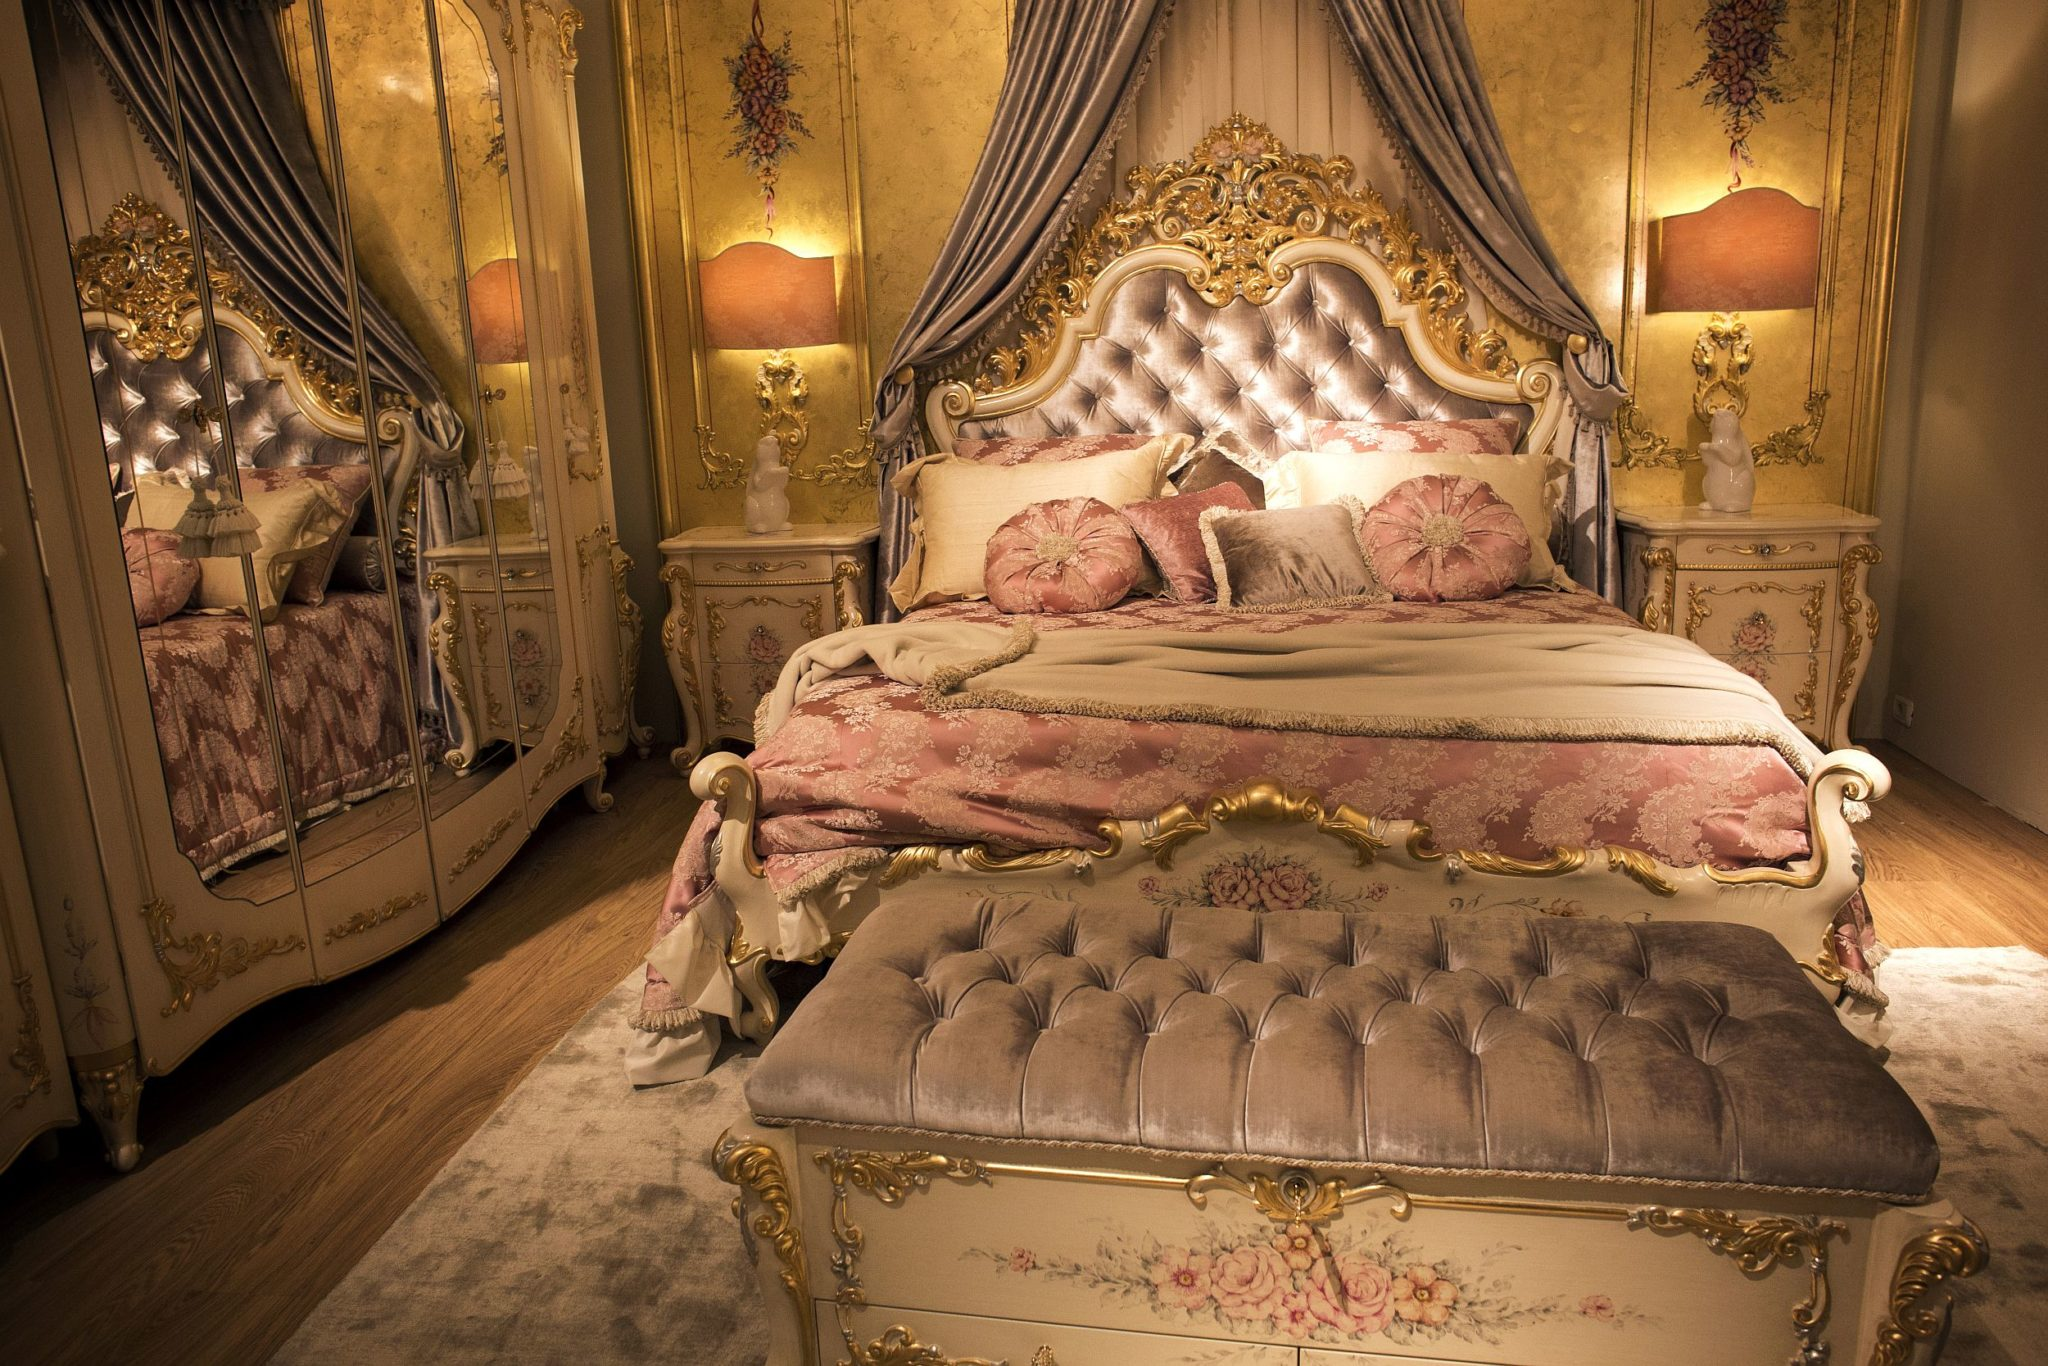 Glitter-of-gold-instantly-adds-splendor-and-opulence-to-the-classic-bedroom